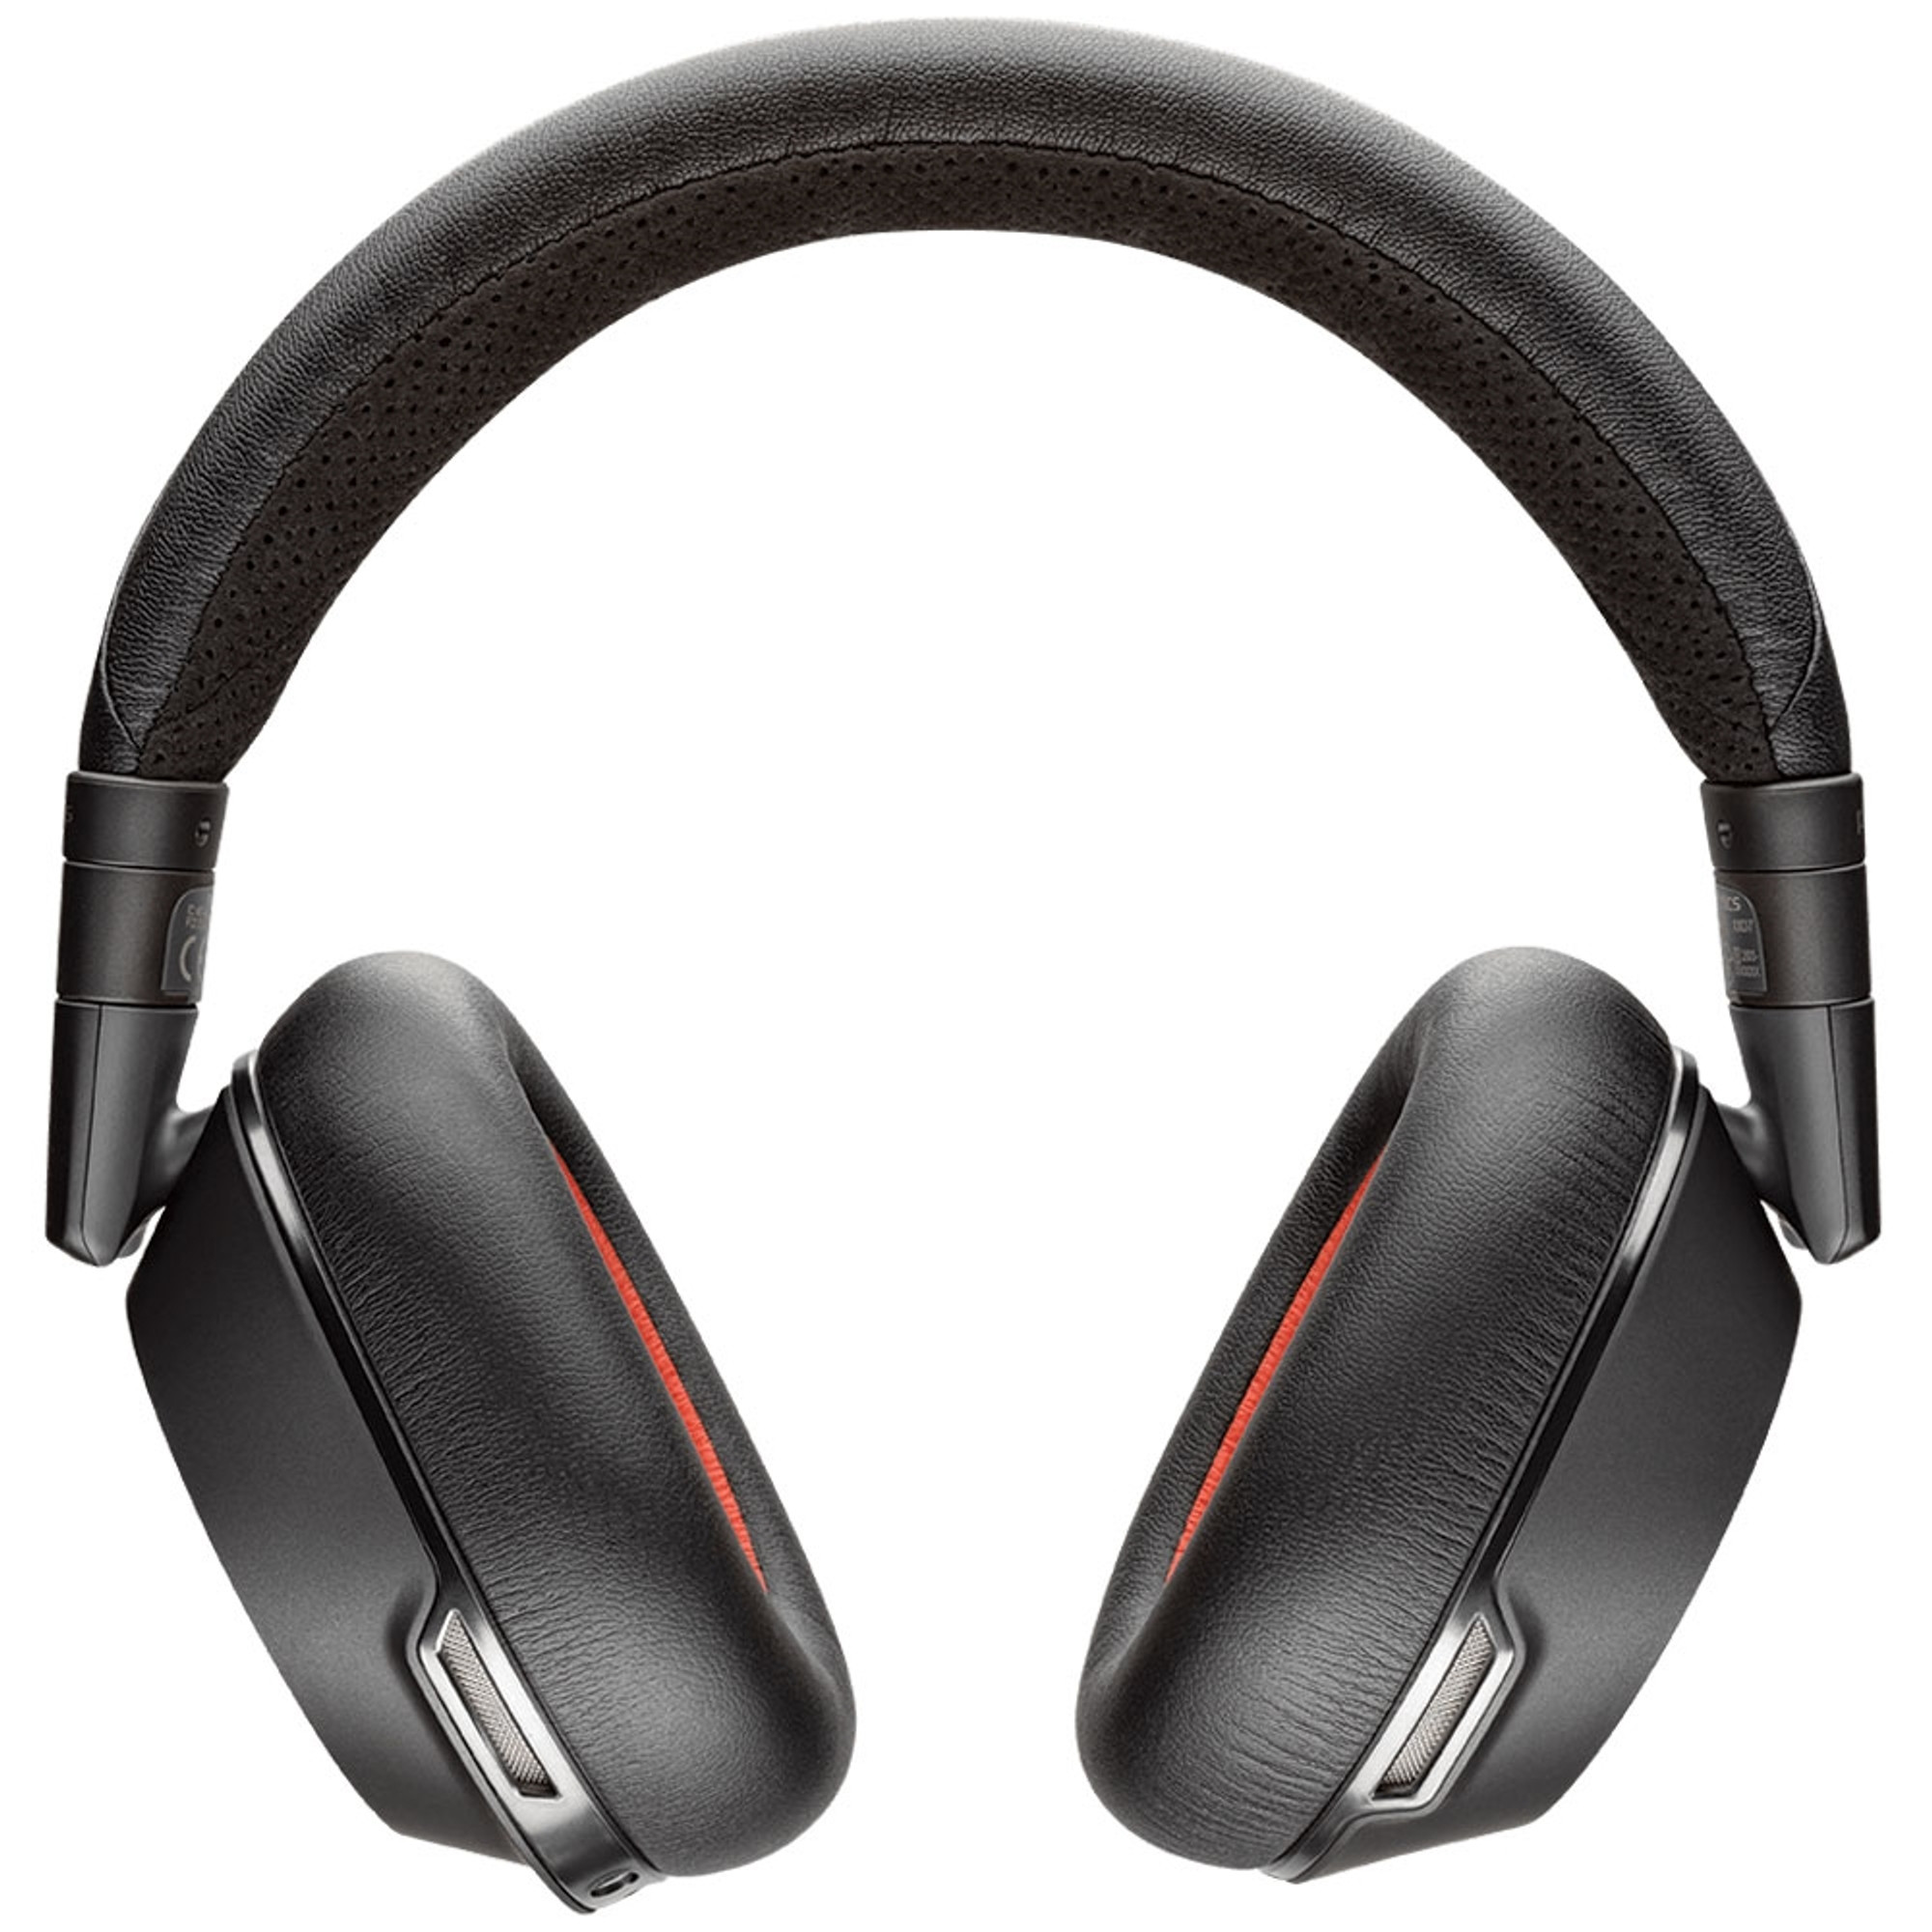 ff28d329534 ... Plantronics Voyager 8200 UC Noise Cancelling Wireless Headset With USB  Adaptor (Black)